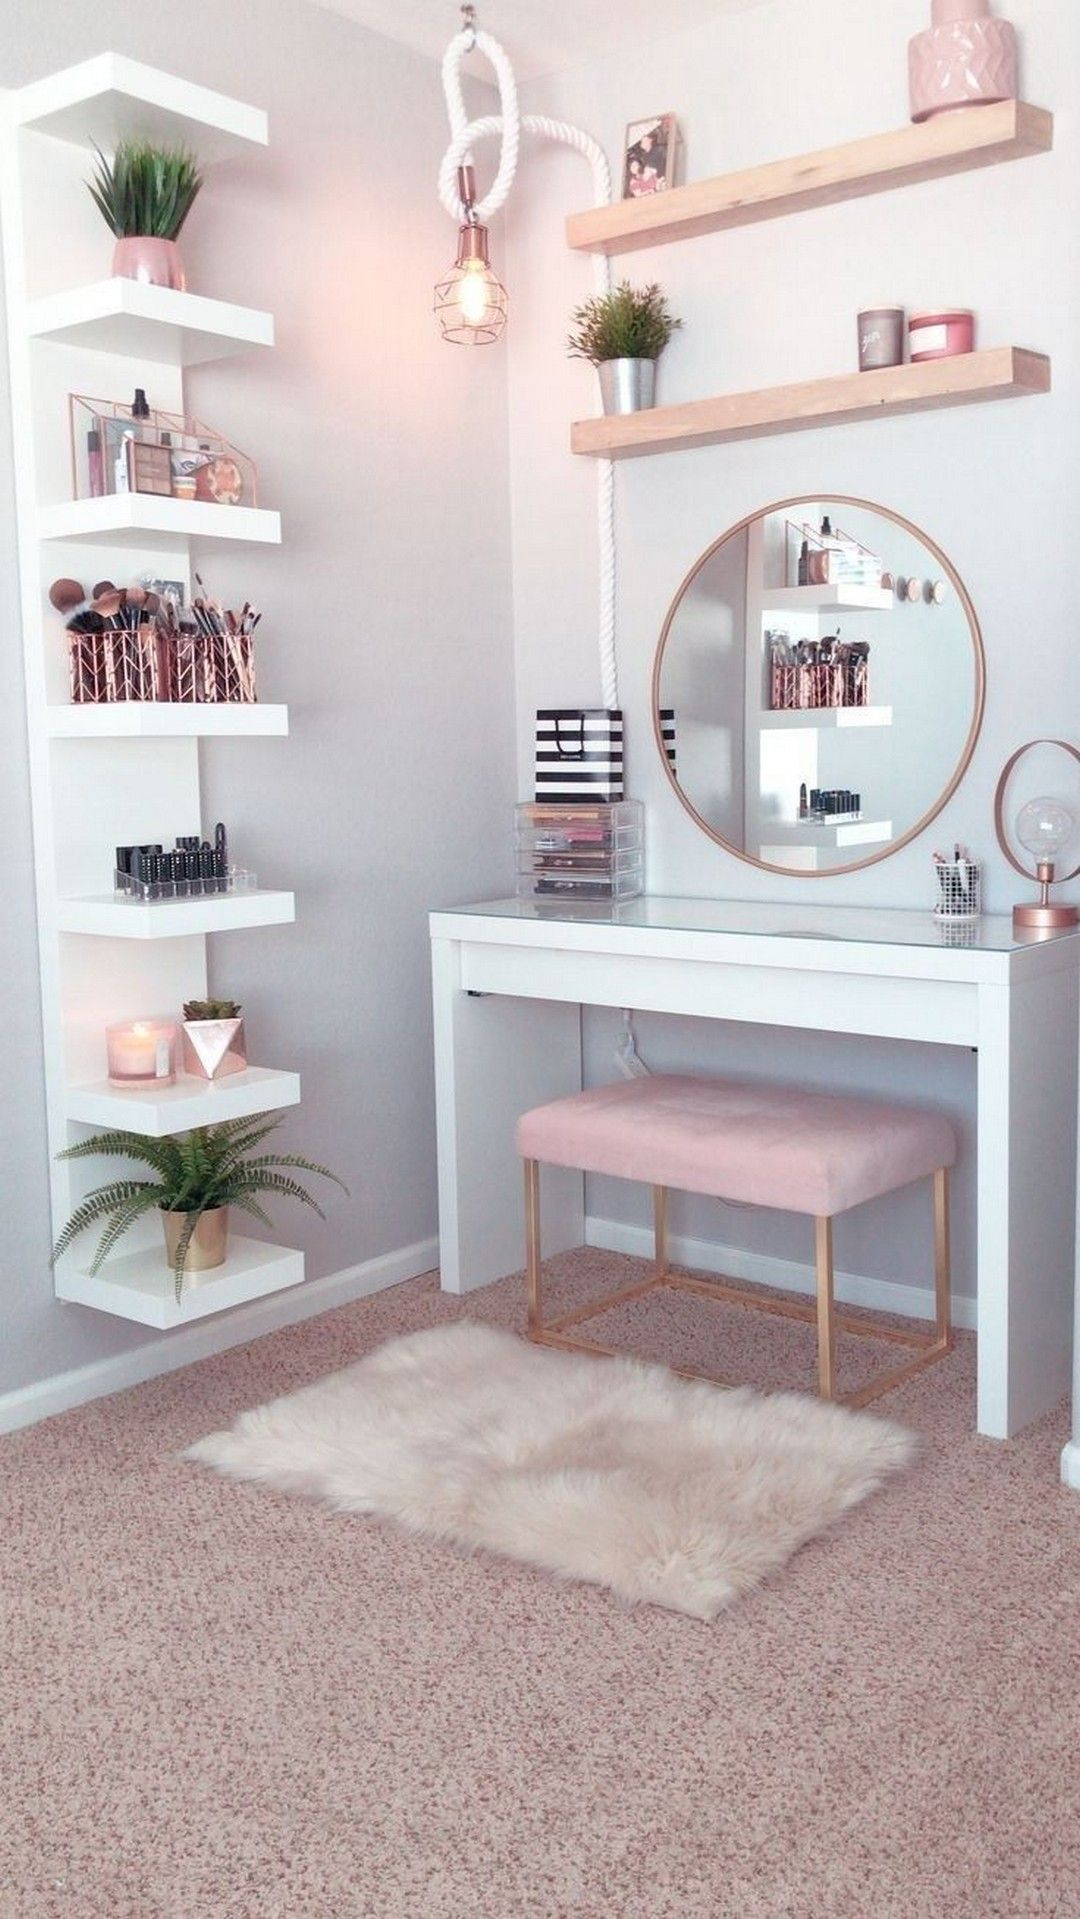 26 Makeup Room Ideas To Brighten Your Morning Routine #roominspo